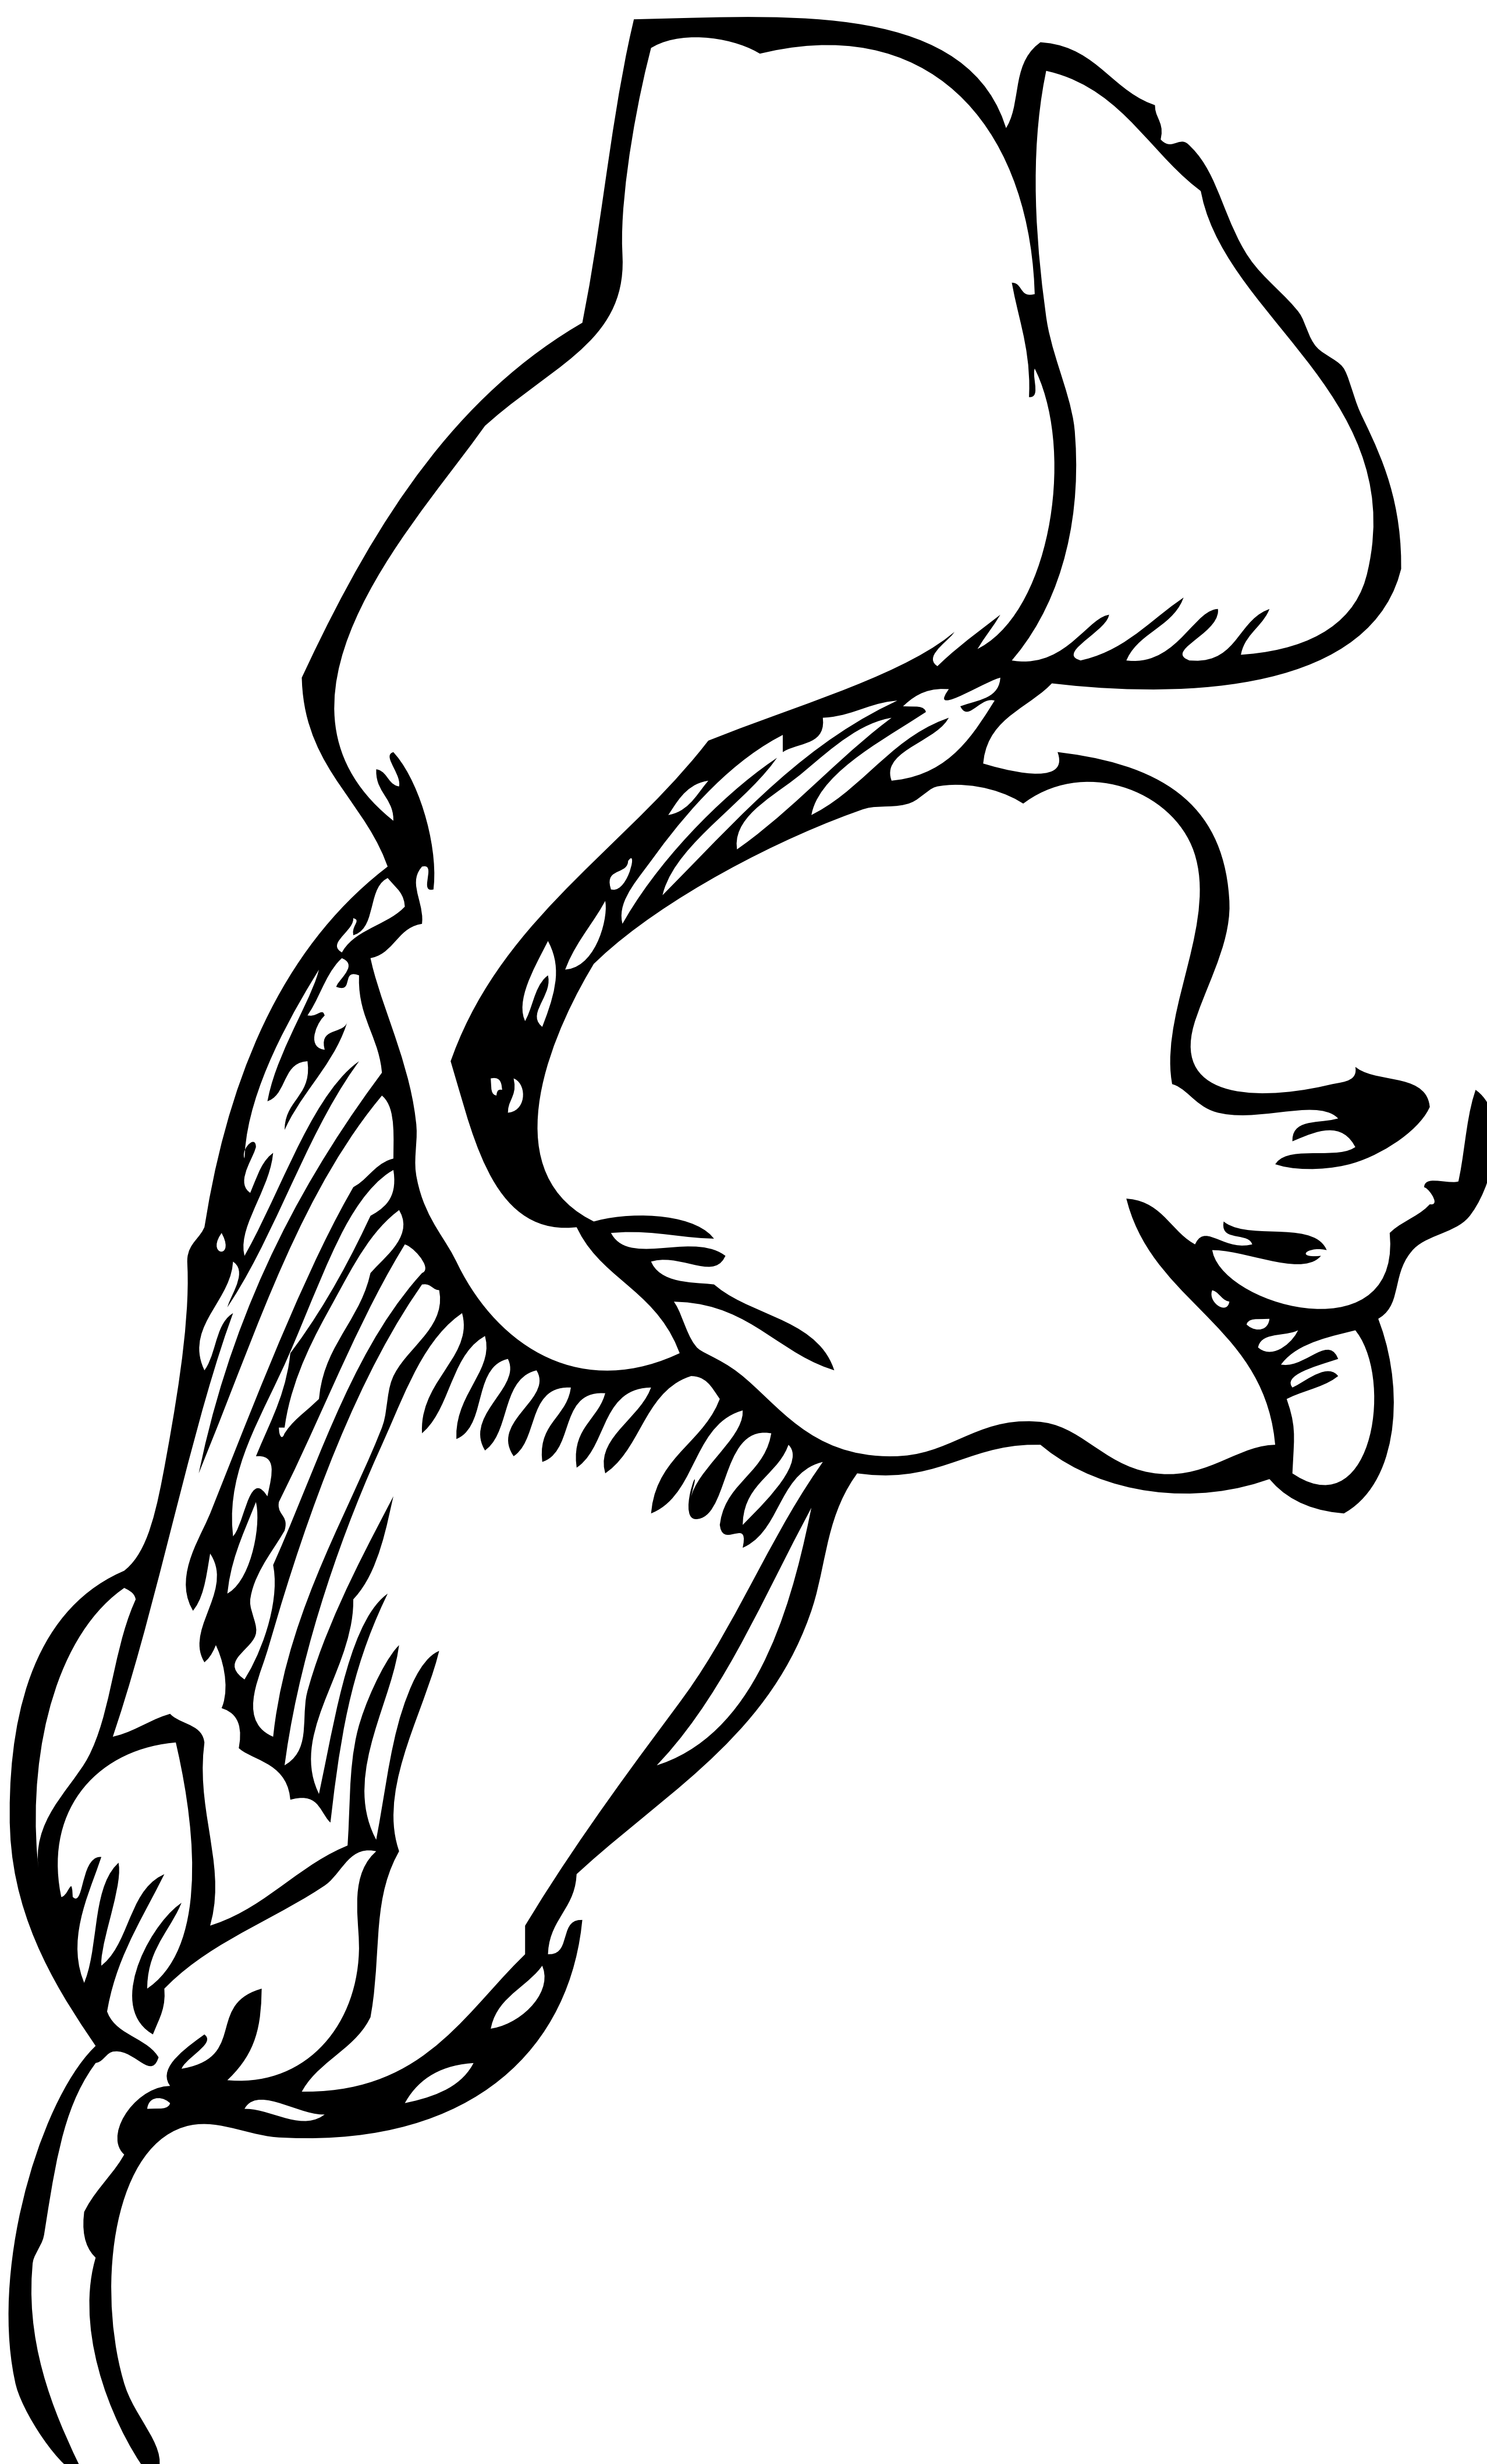 Snapdragon flower clipart clip freeuse library Snapdragon Flower Coloring Pages - Free Coloring Pages clip freeuse library